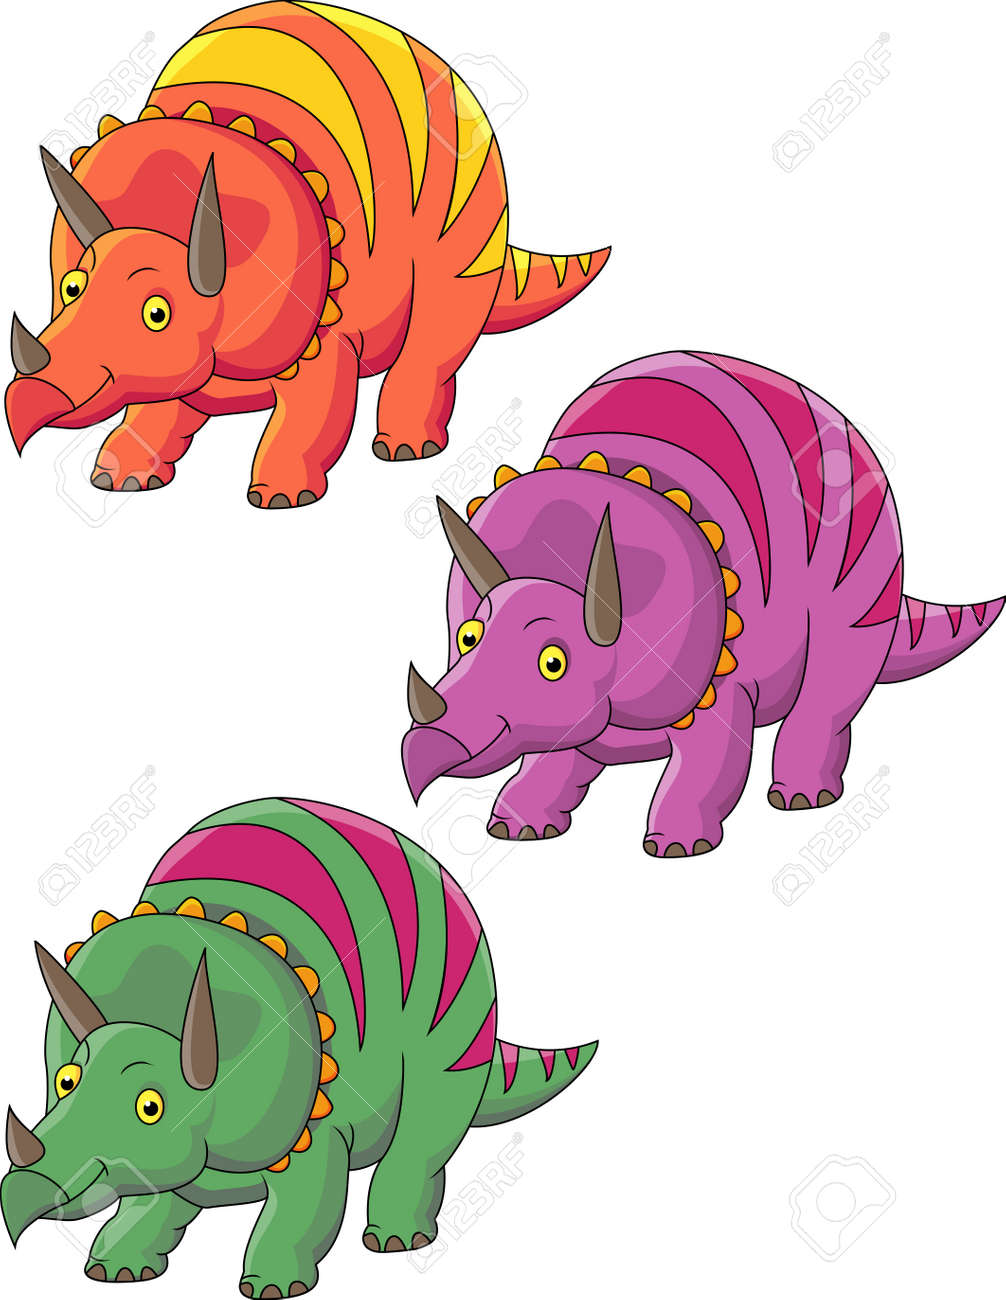 Dinosaur cartoon Stock Vector - 13495586